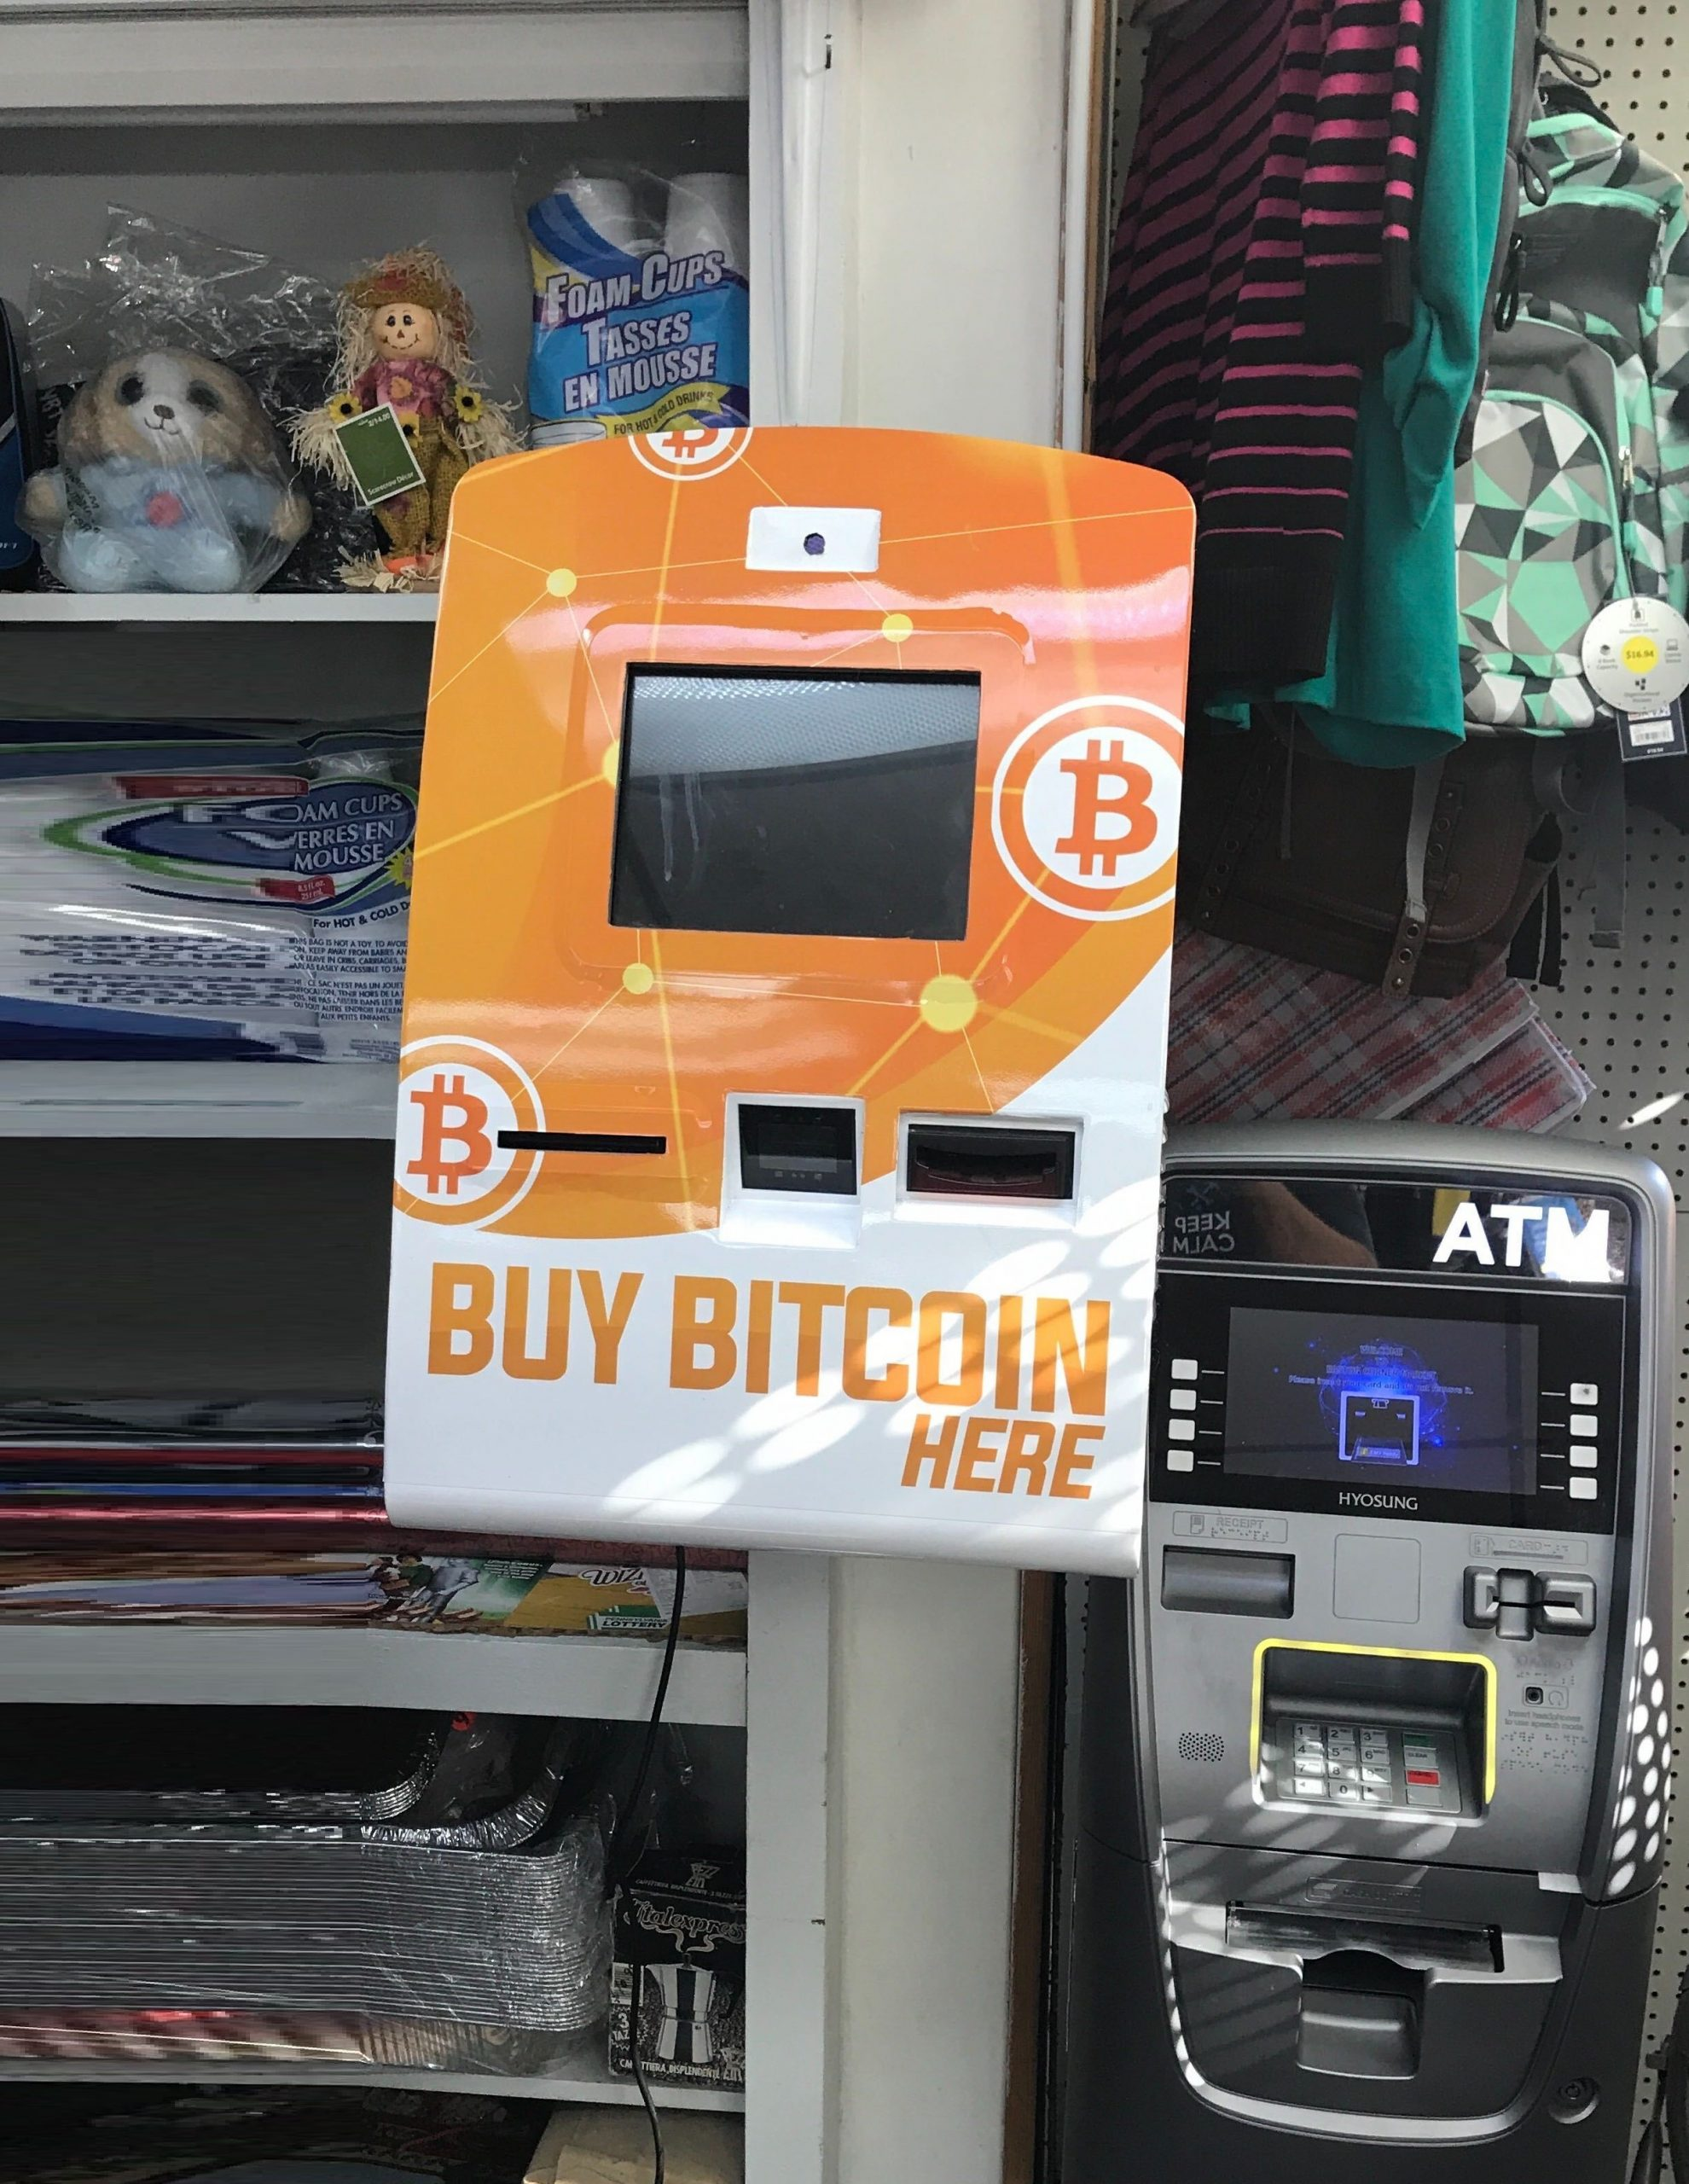 Bitcoin ATM Easton, 359 Northampton St, Easton by Hippo Bitcoin ATM - Hippo Kiosks for buying Bitcoin near you